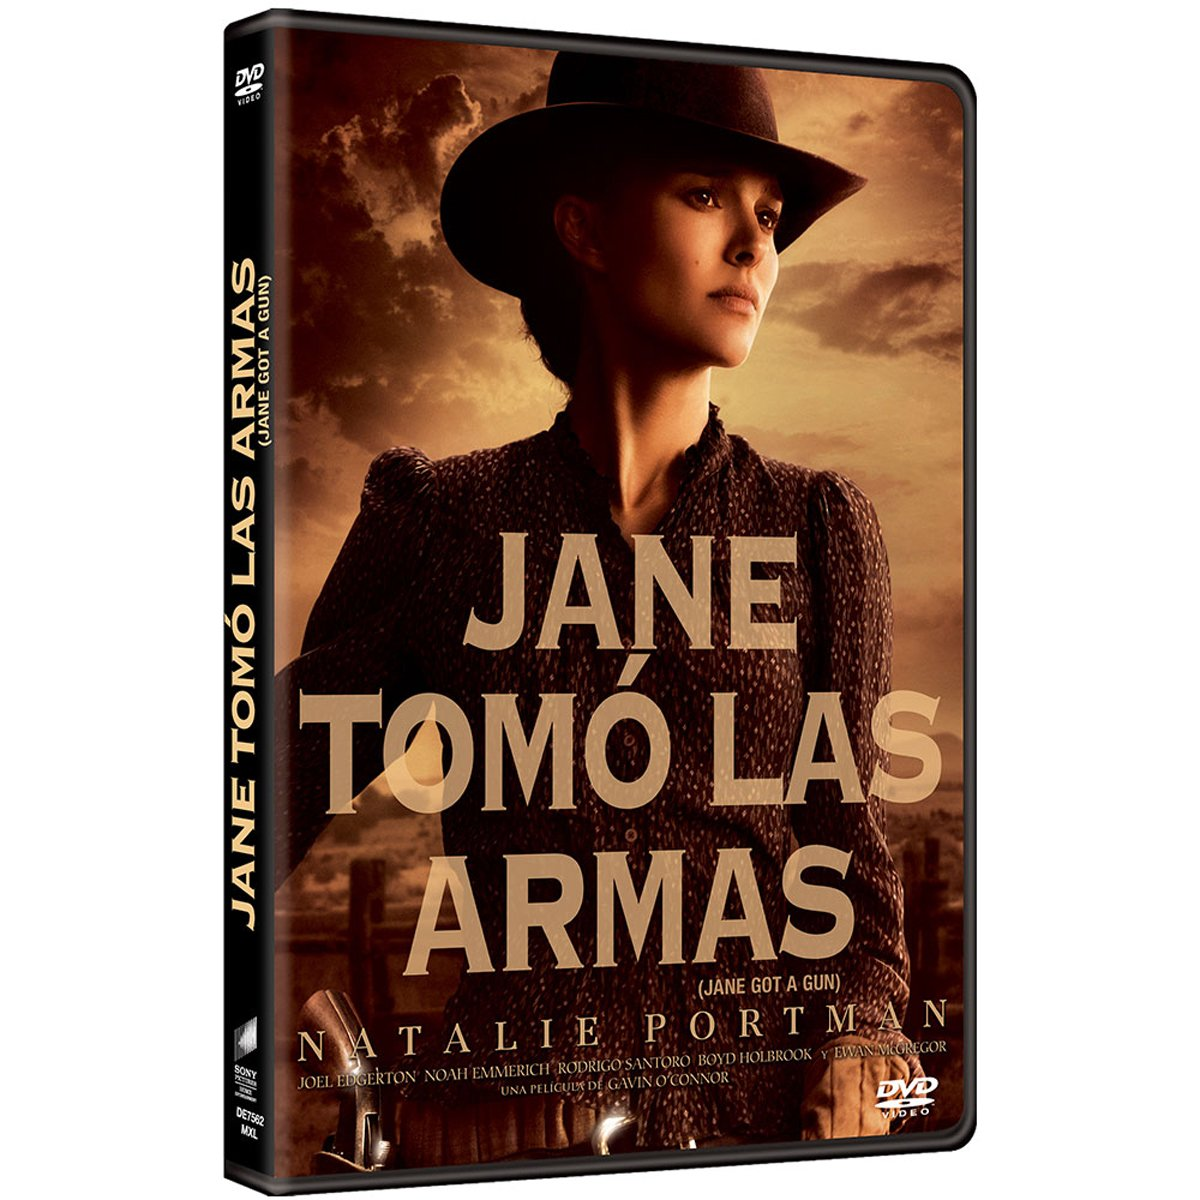 Dvd jane tomo las armas sears com mx me entiende for Servicio tecnico jane